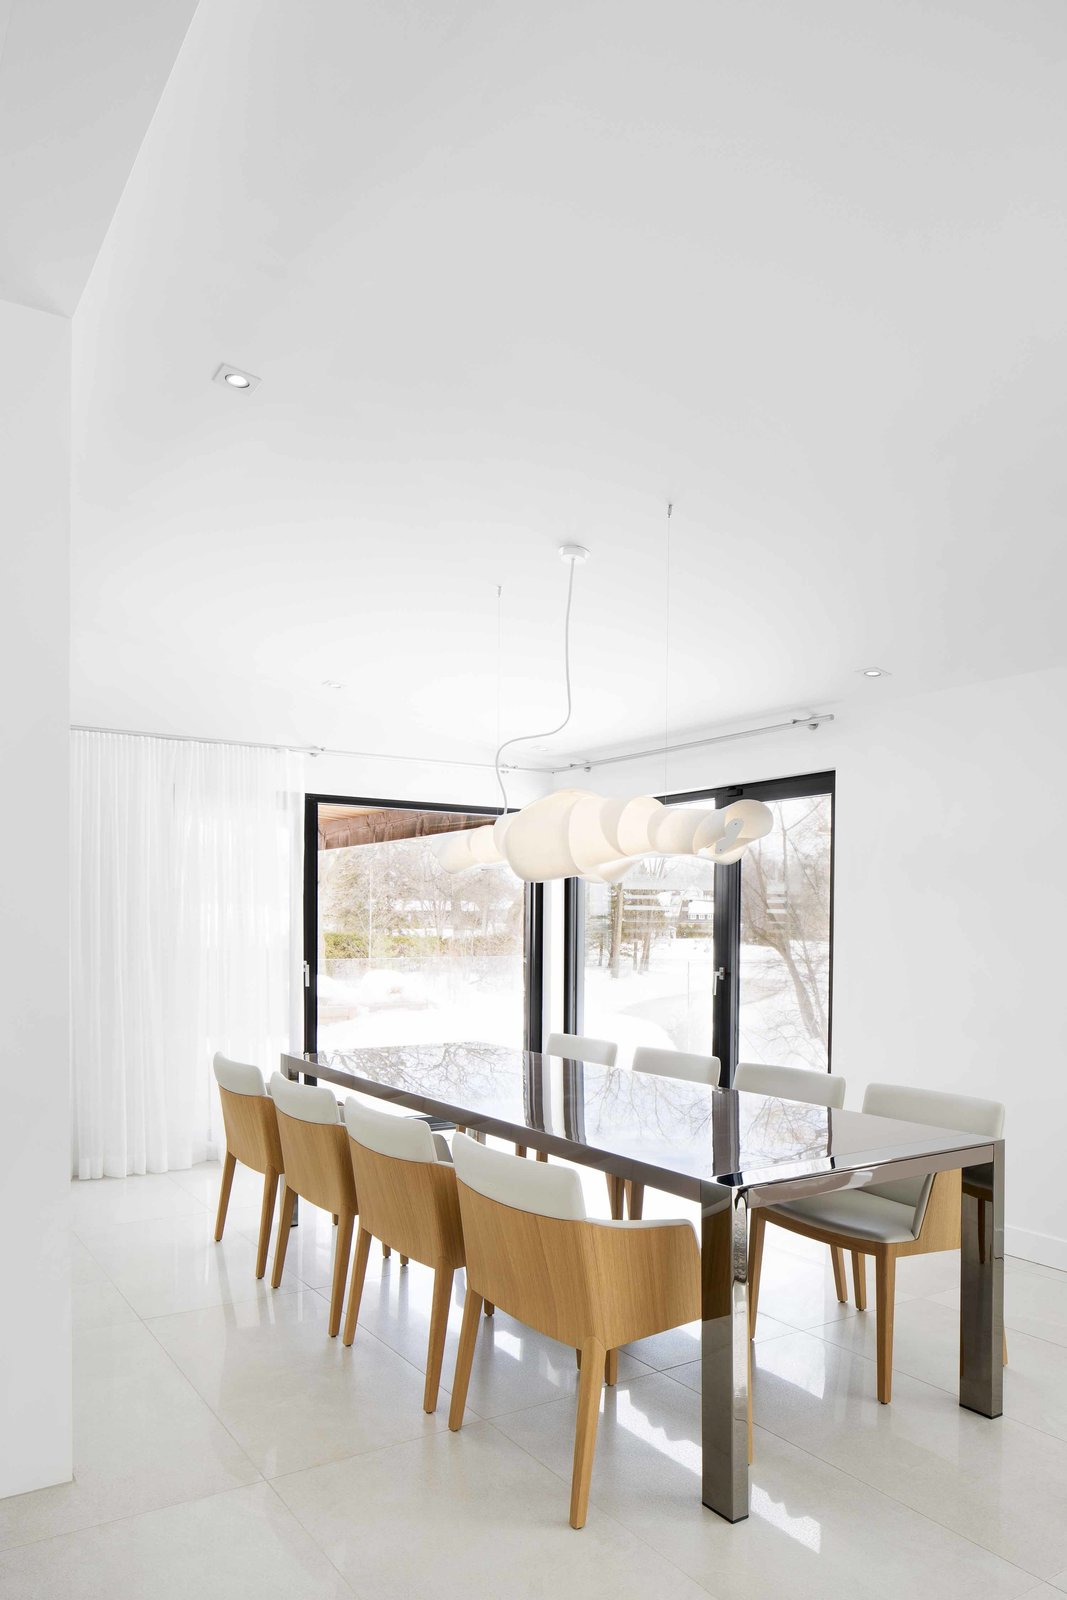 Playful stylistic details, such as two-toned dining chairs from Latitude Nord and a creative lighting fixture from Au Courant, are juxtaposed with the rest of the home's tranquil elegance. How to Refresh a Midcentury Gem in Quebec? Winter-White Everything - Photo 10 of 12